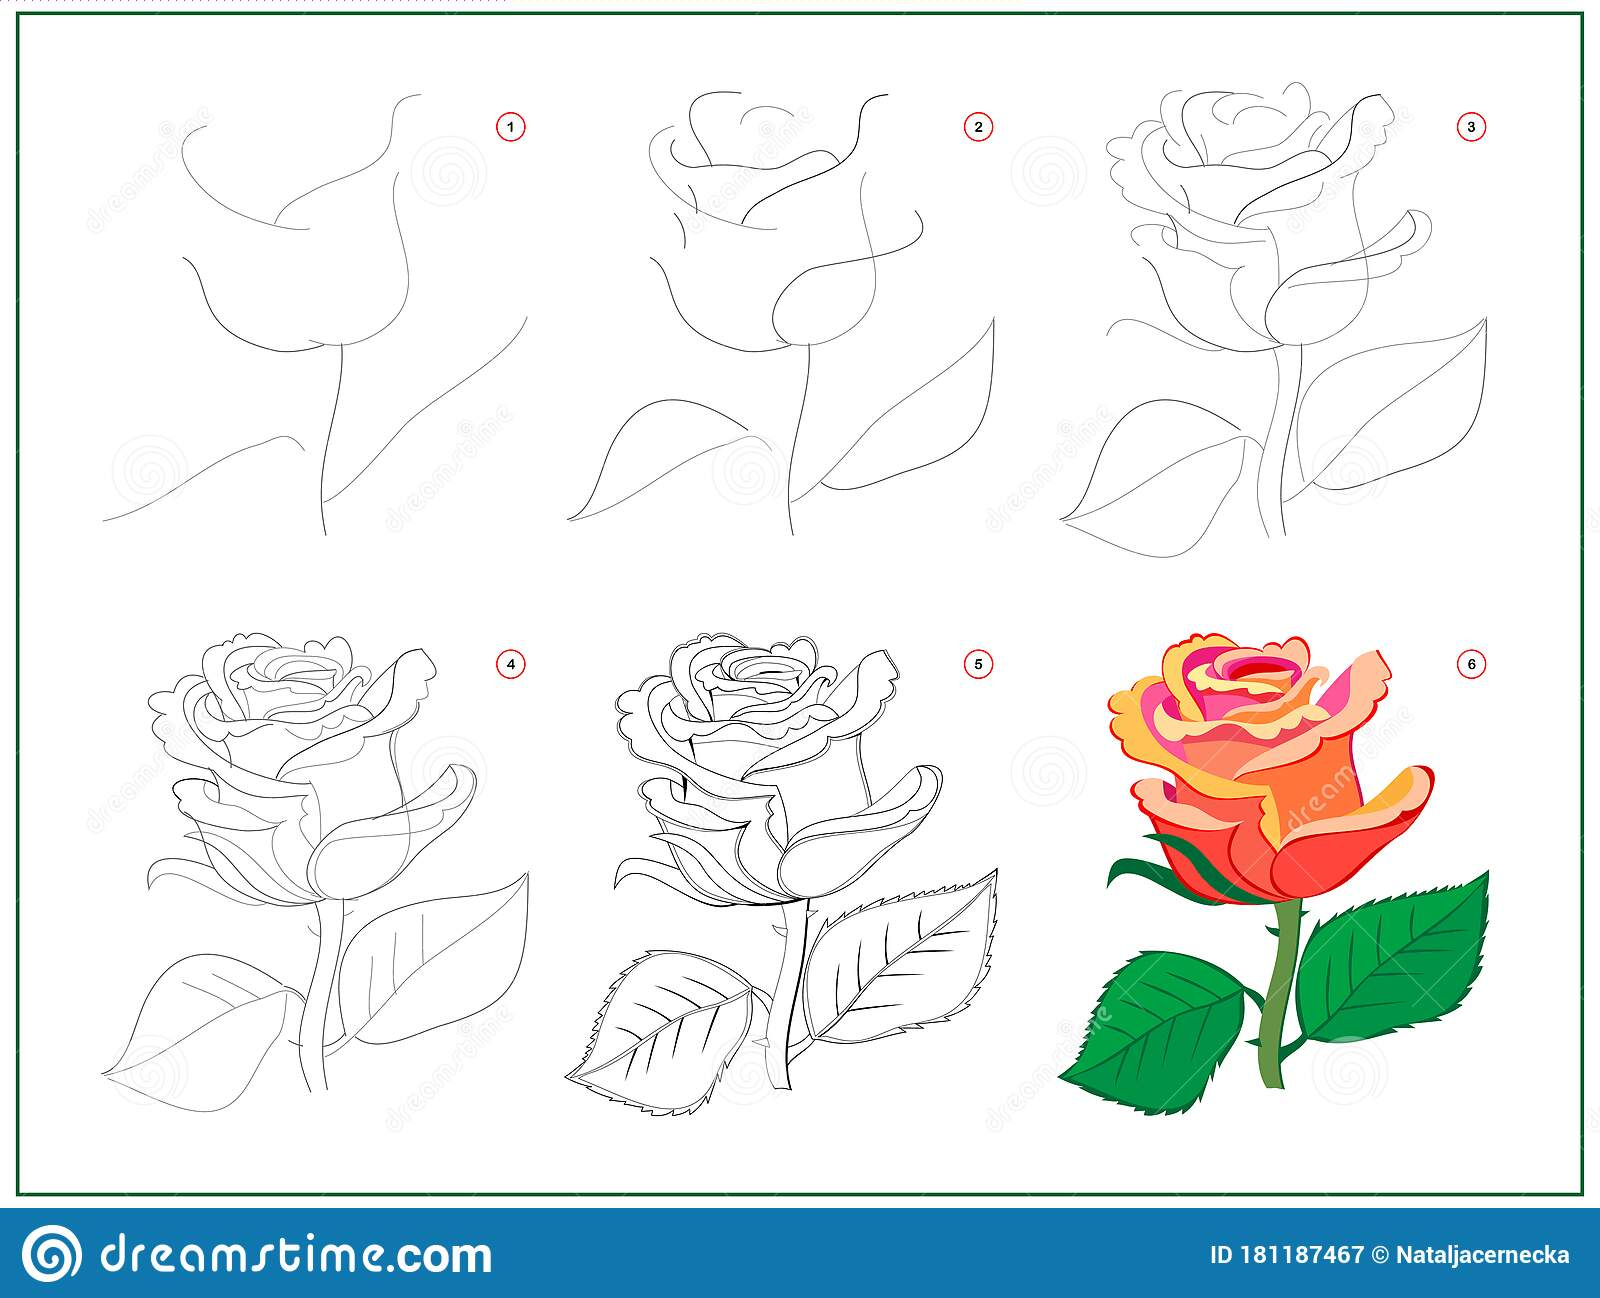 Page Shows How To Learn To Draw Step By Step Beautiful Rose Flower Developing Children Skills For Drawing And Coloring Printable Stock Vector Illustration Of Sketch Printable 181187467